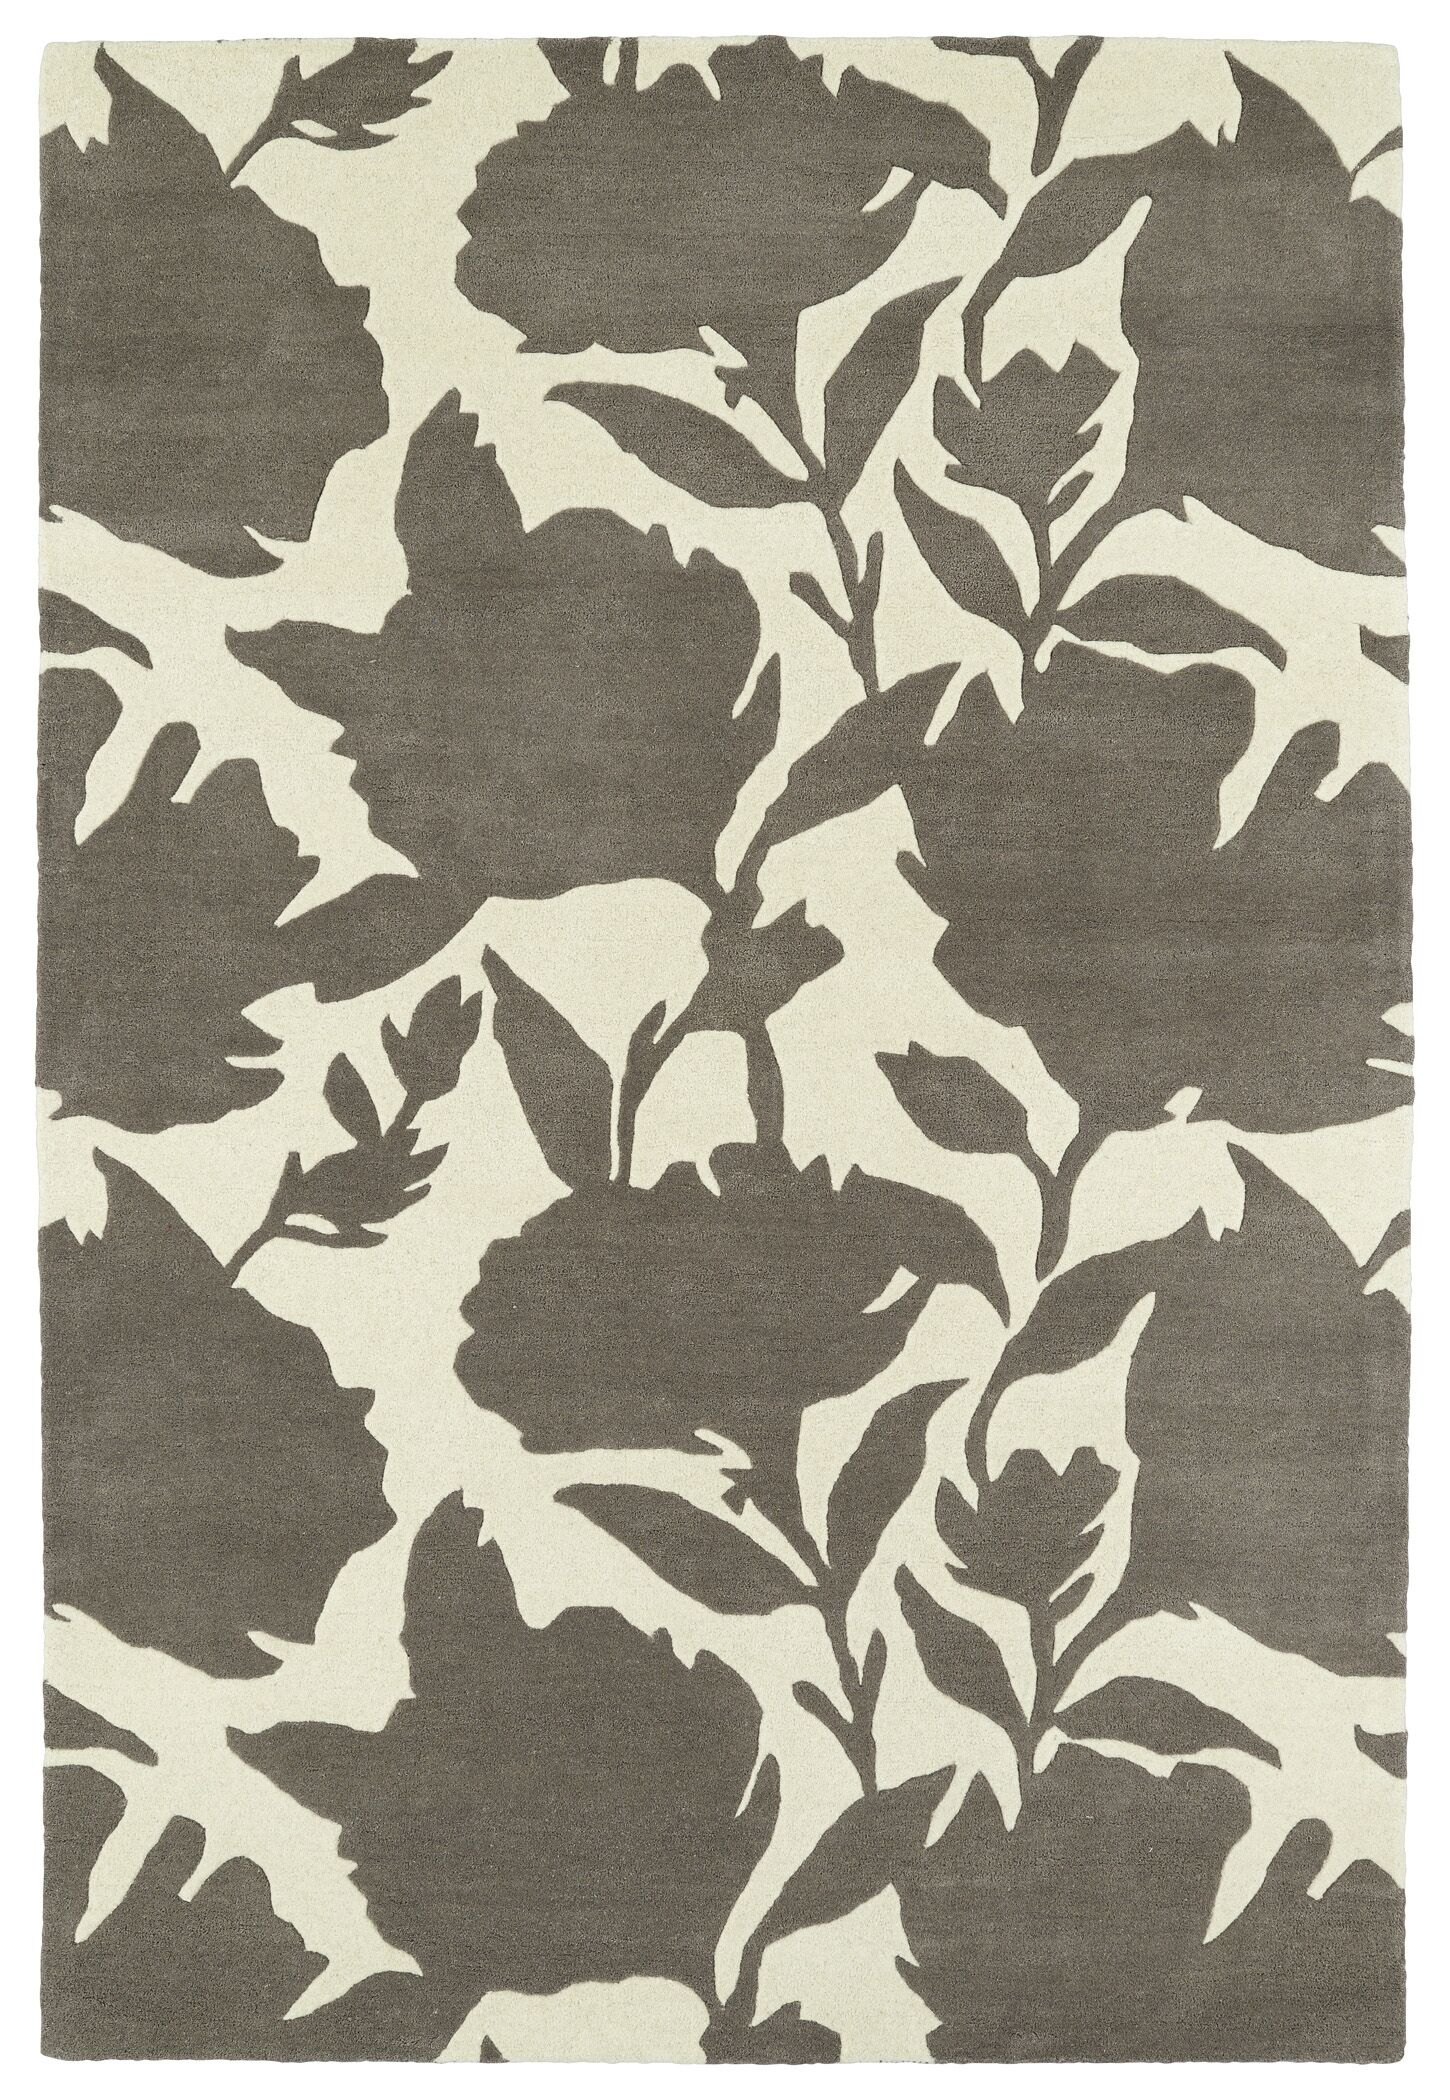 Marquain Hand-Tufted Grey / Ivory Area Rug Rug Size: Rectangle 9' x 12'